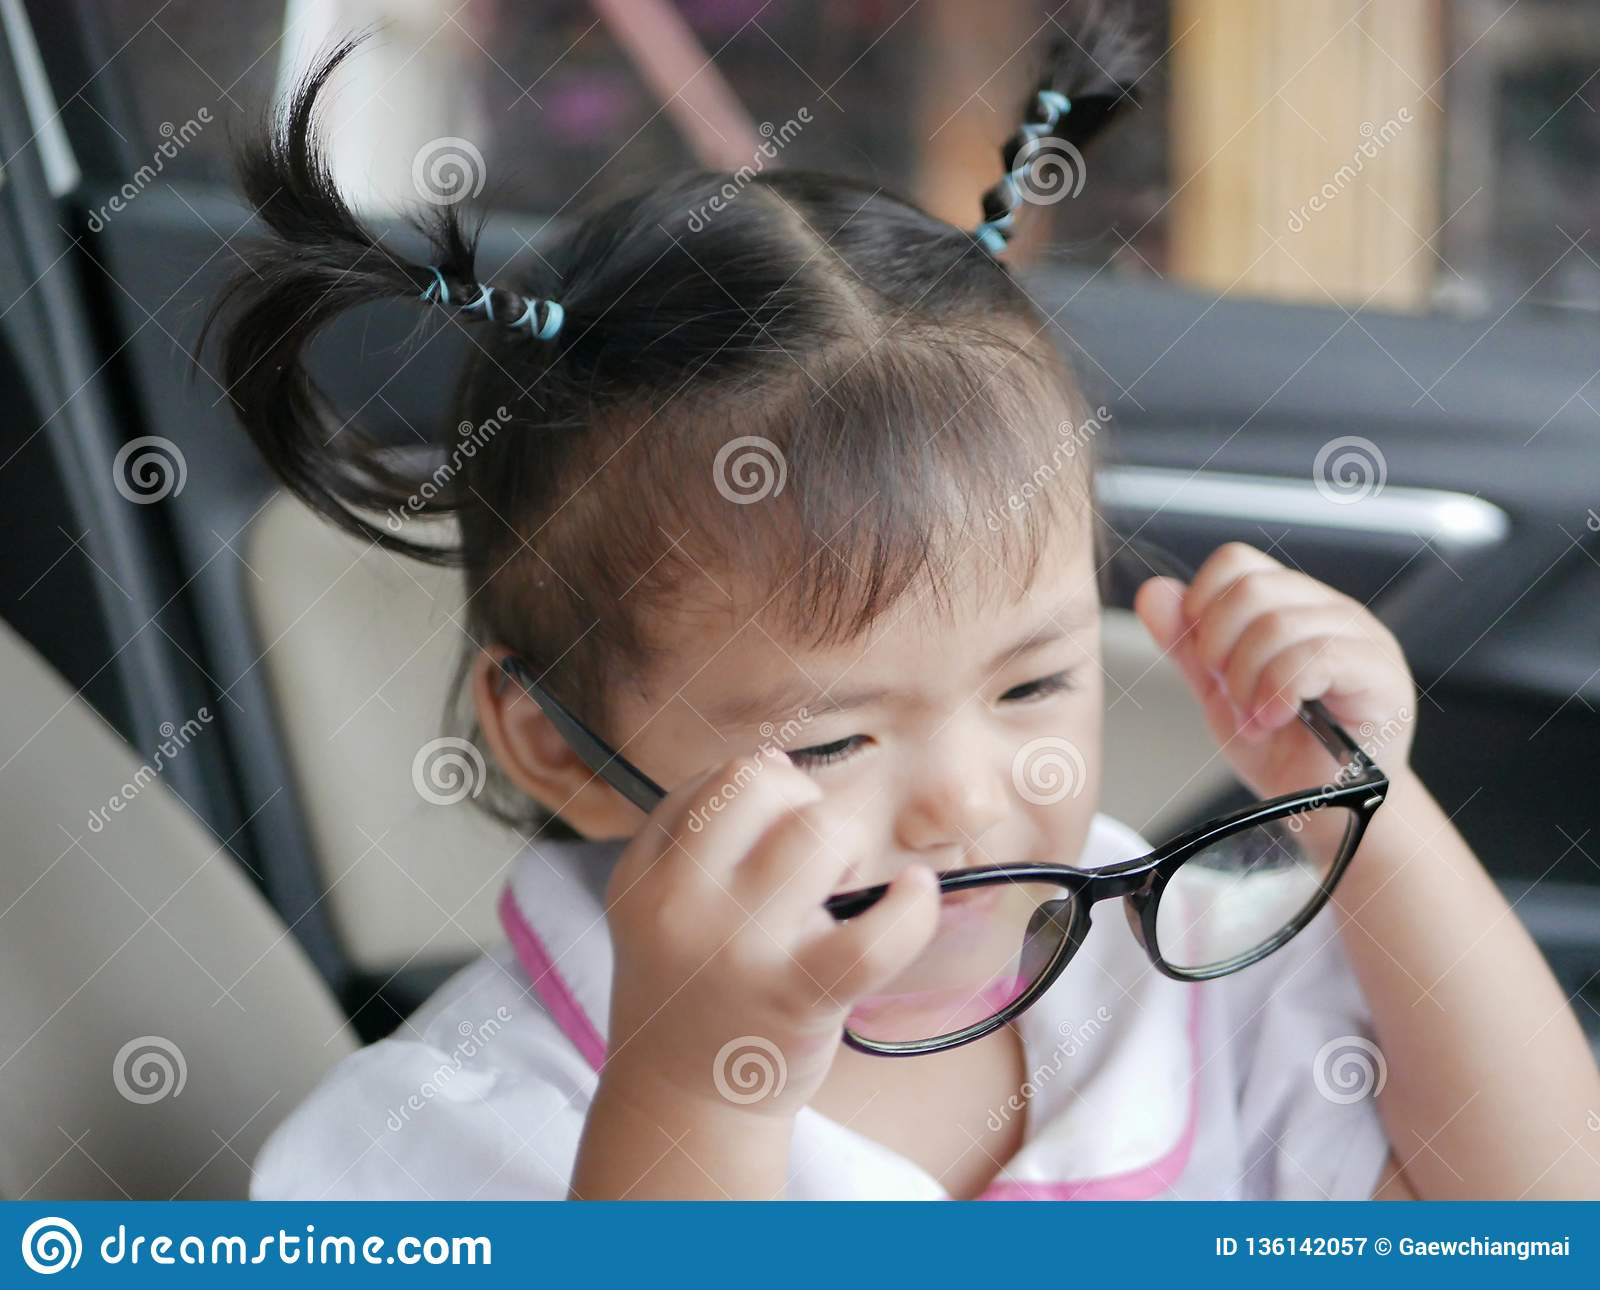 Little Asian baby girl taking off eyeglasses, after trying to put them on